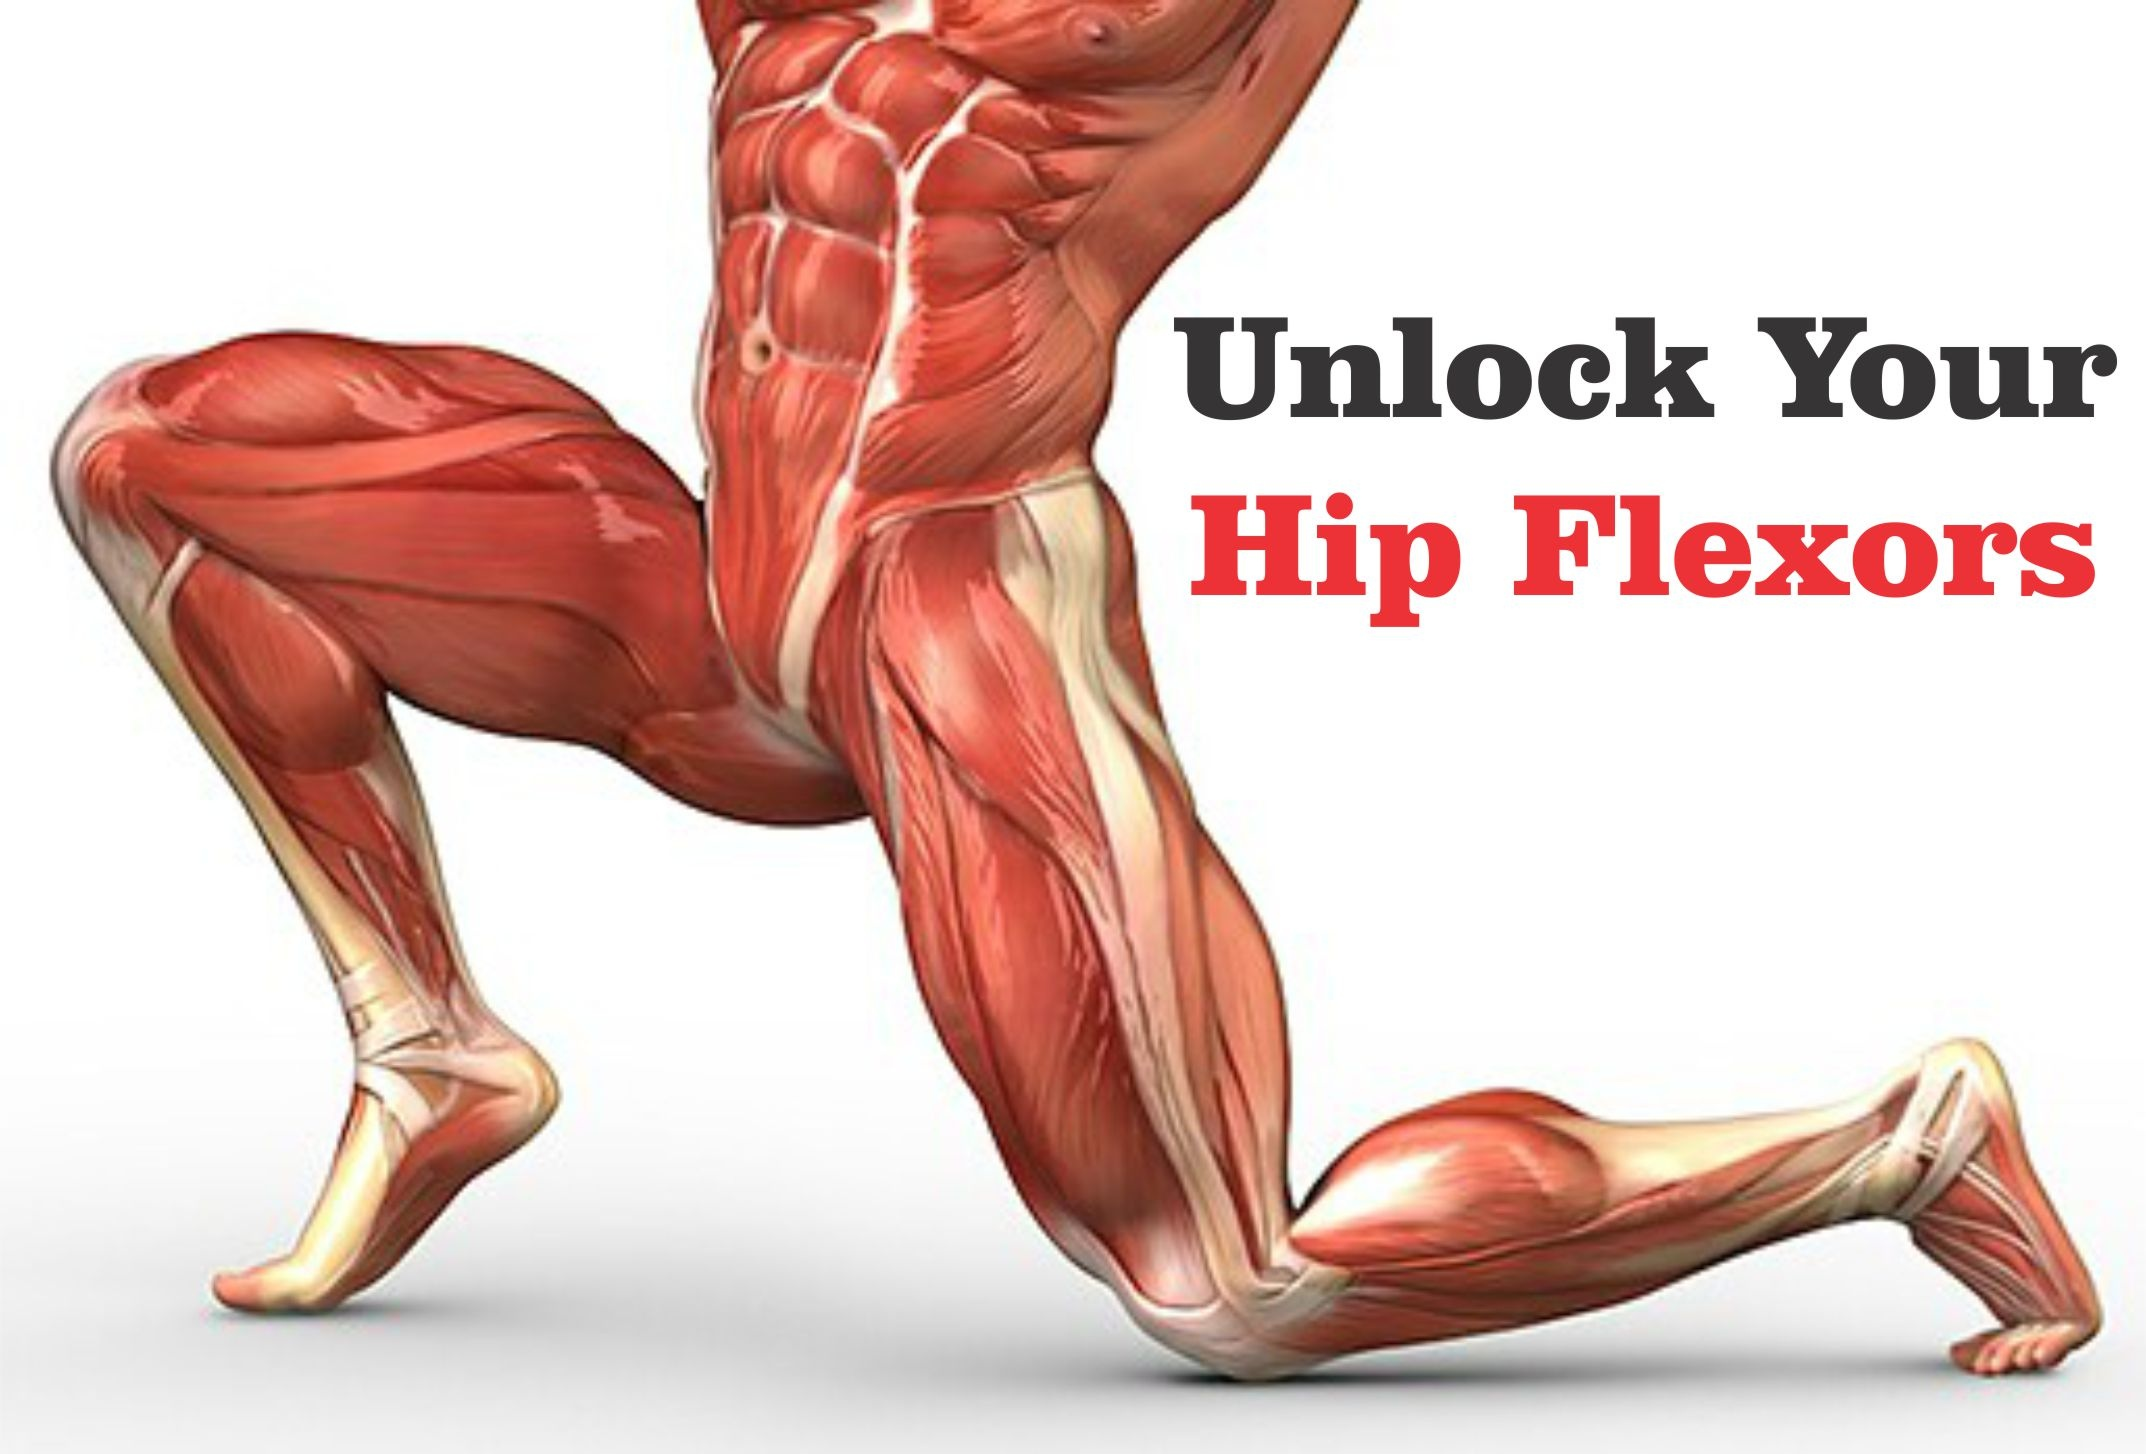 How To Relieve Tight Hip Flexors